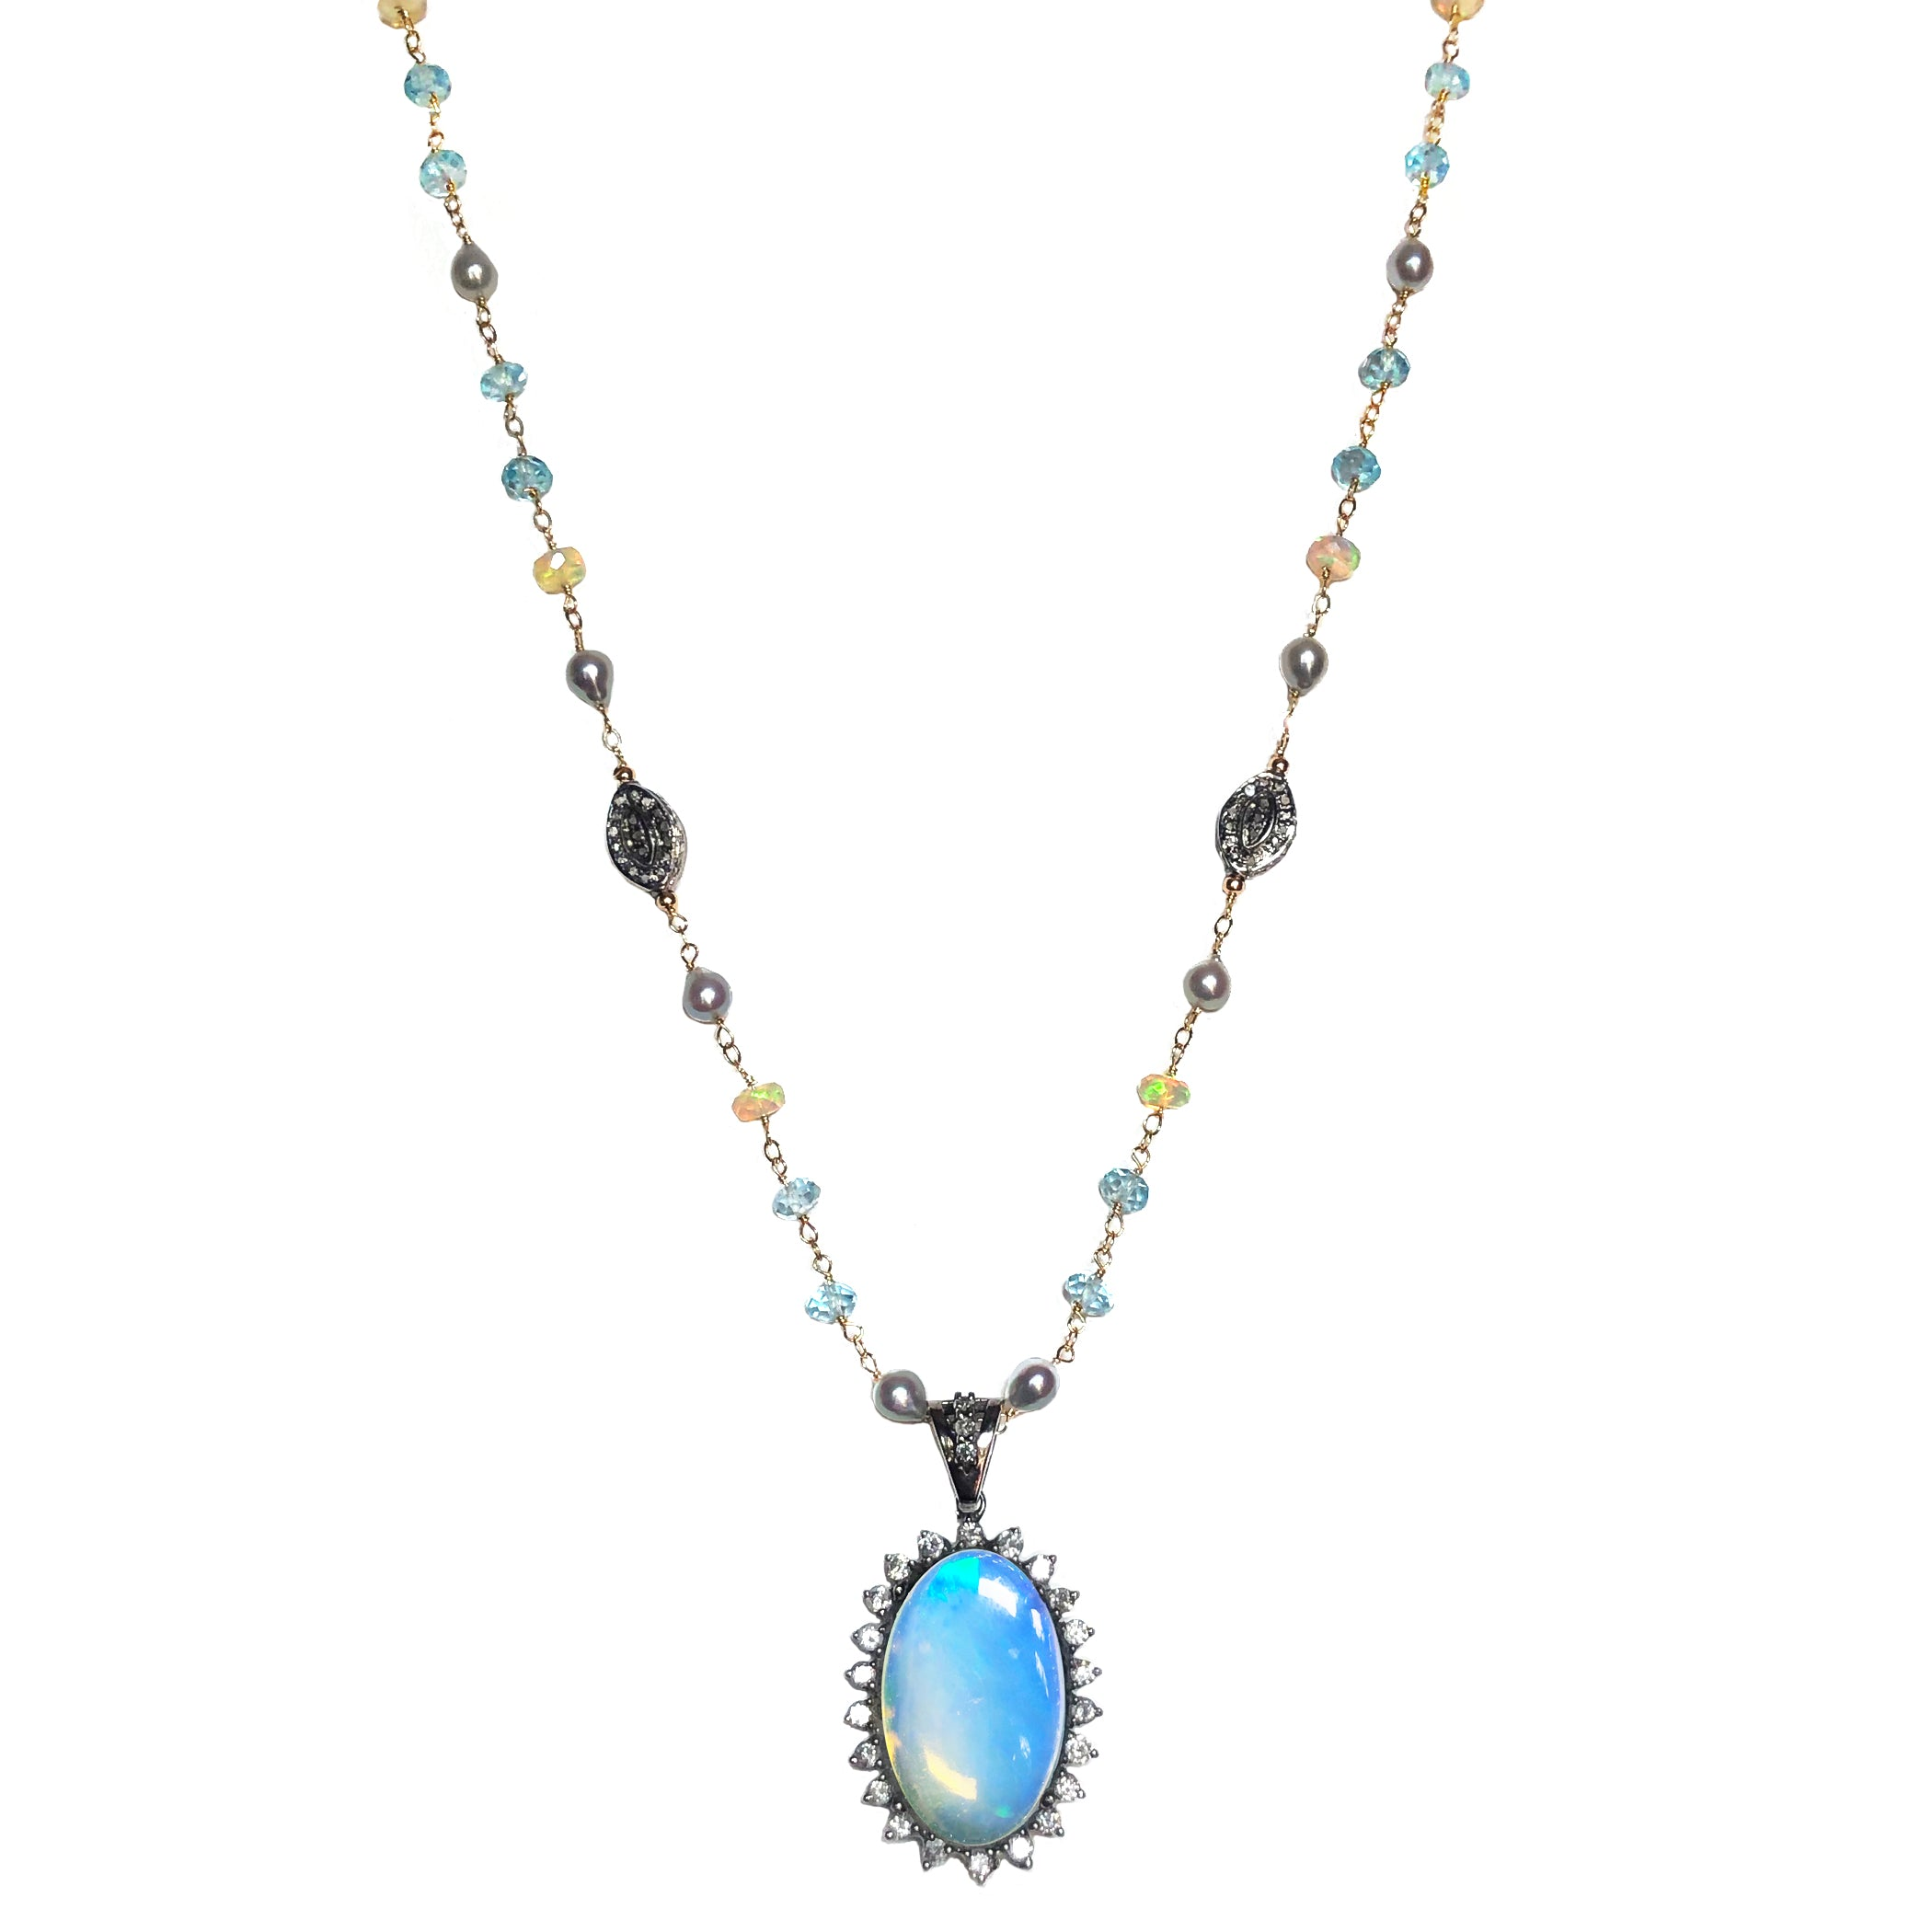 Opal, Diamonds, Blue Topaz, Baroque Japanese Akoya in 14K Gold